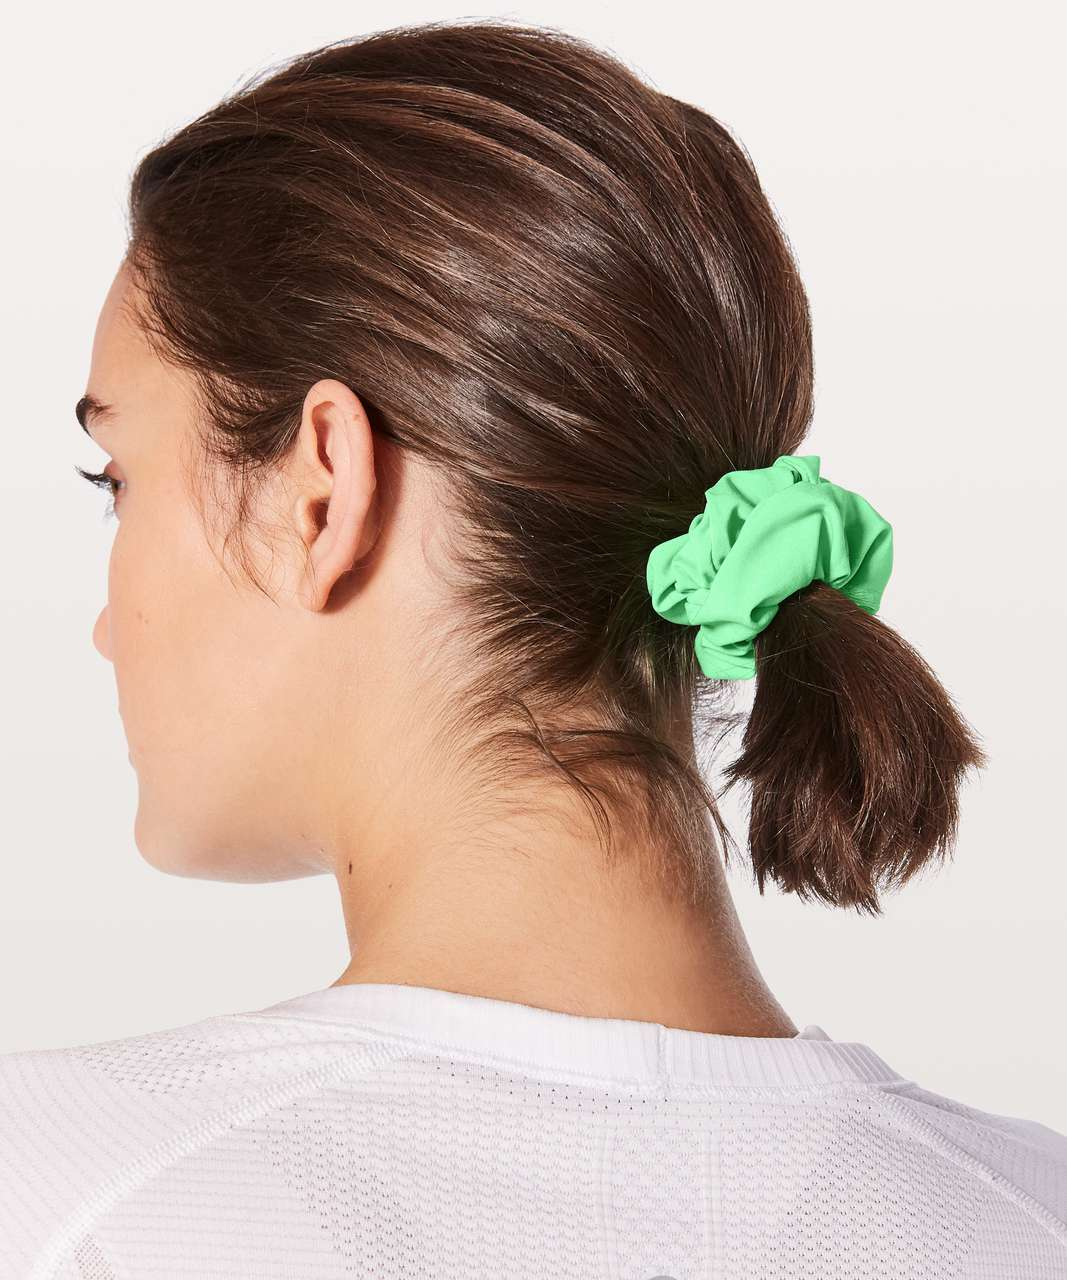 Lululemon Uplifting Scrunchie - Dragonfly